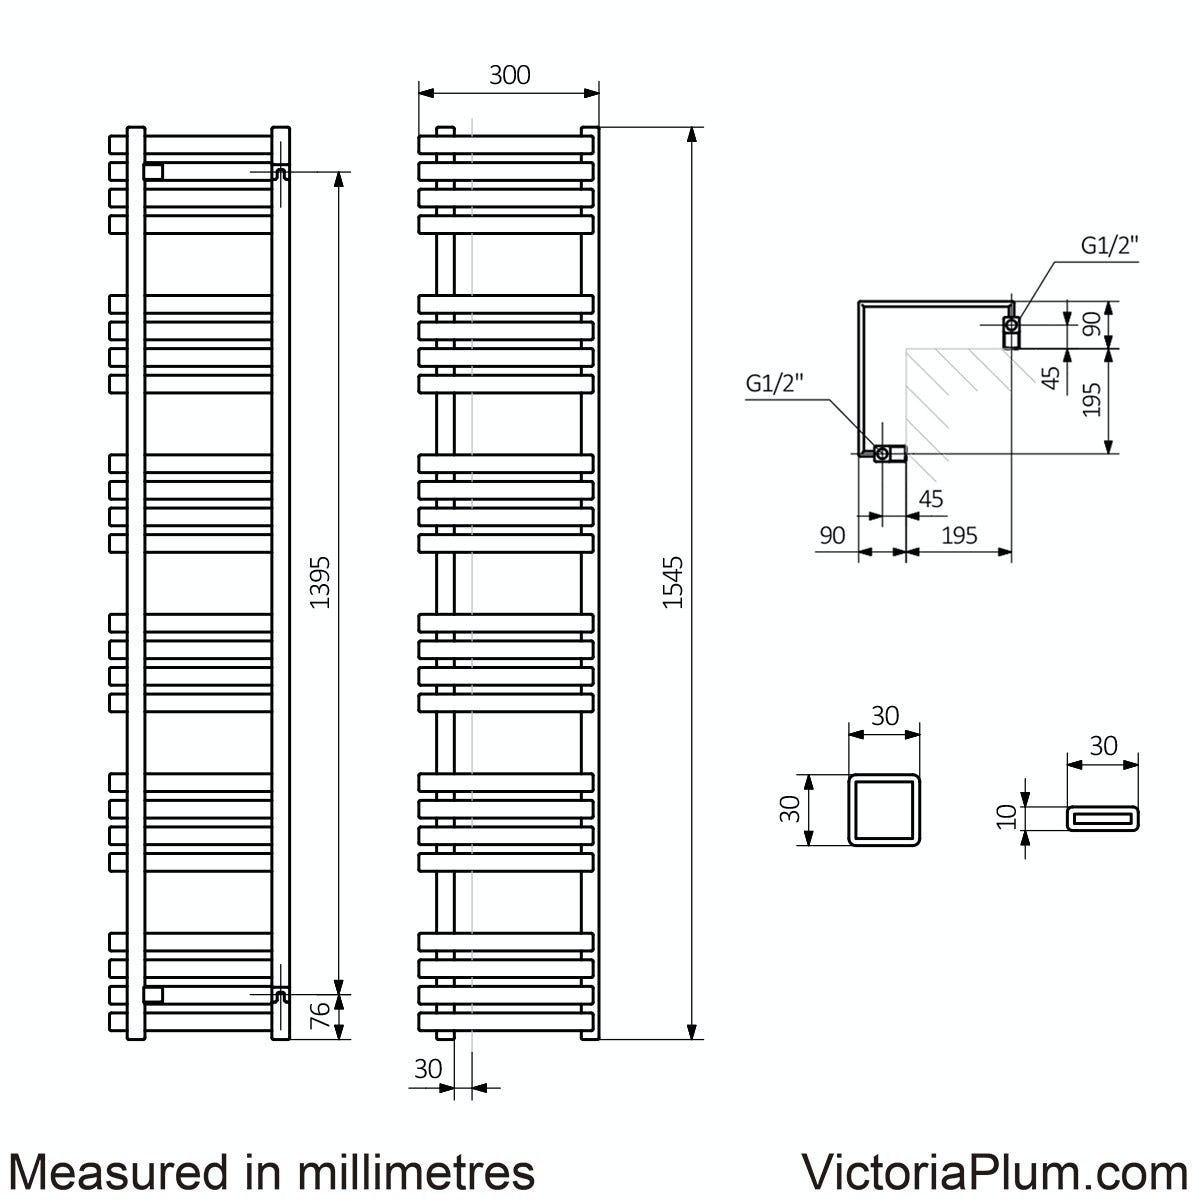 Dimensions for Terma Outcorner modern grey heated towel rail 1545 x 300